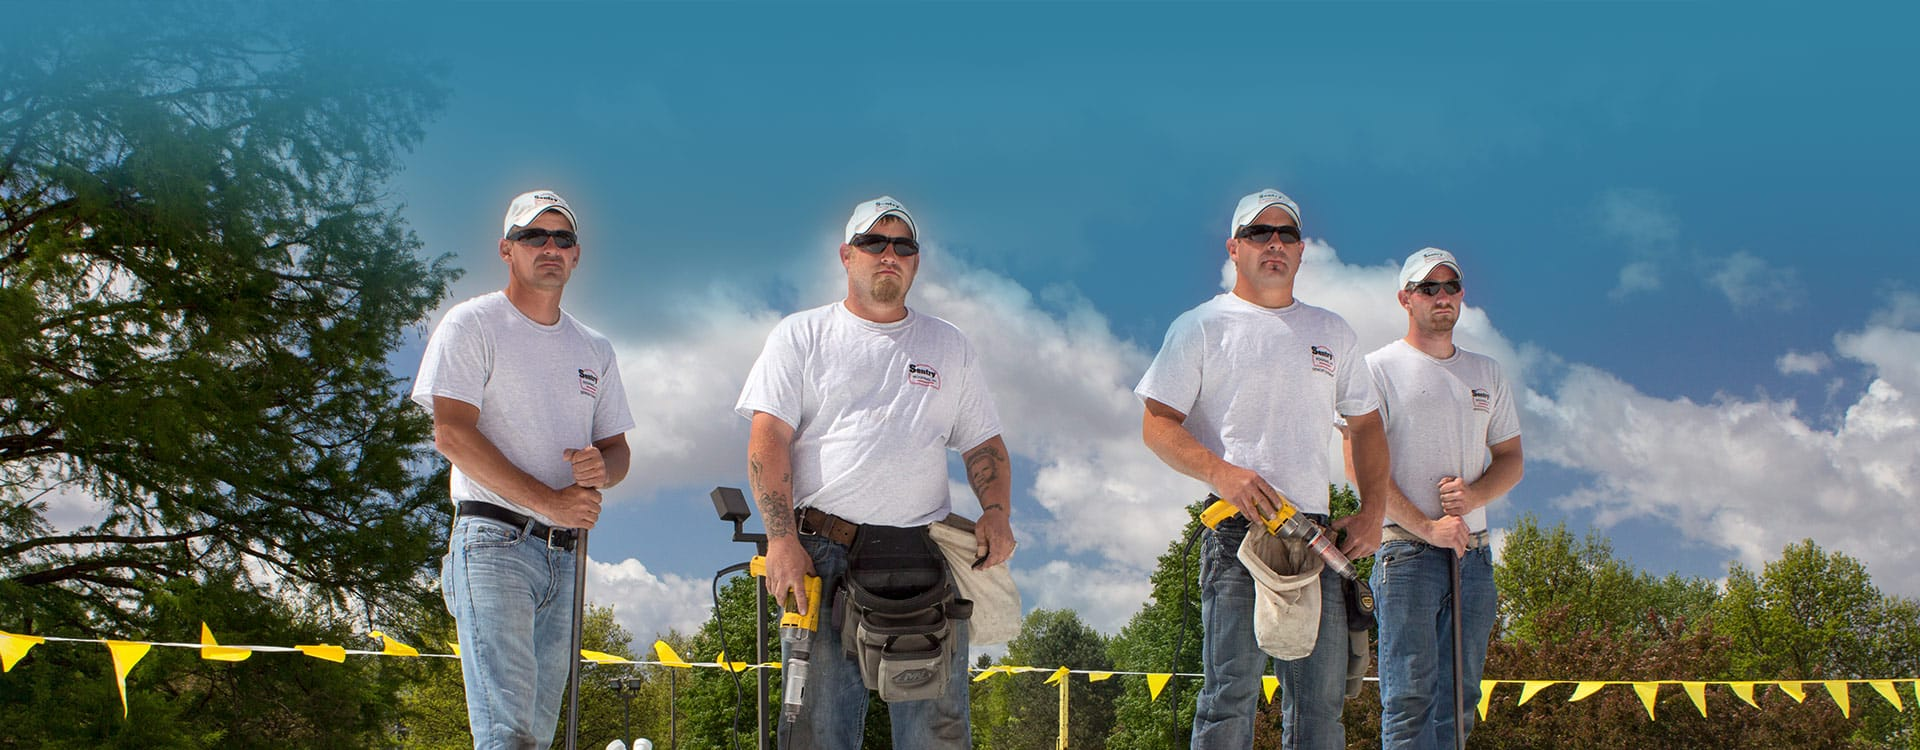 Sentry Roofing - Commercial Roofing Installation Crew Indiana